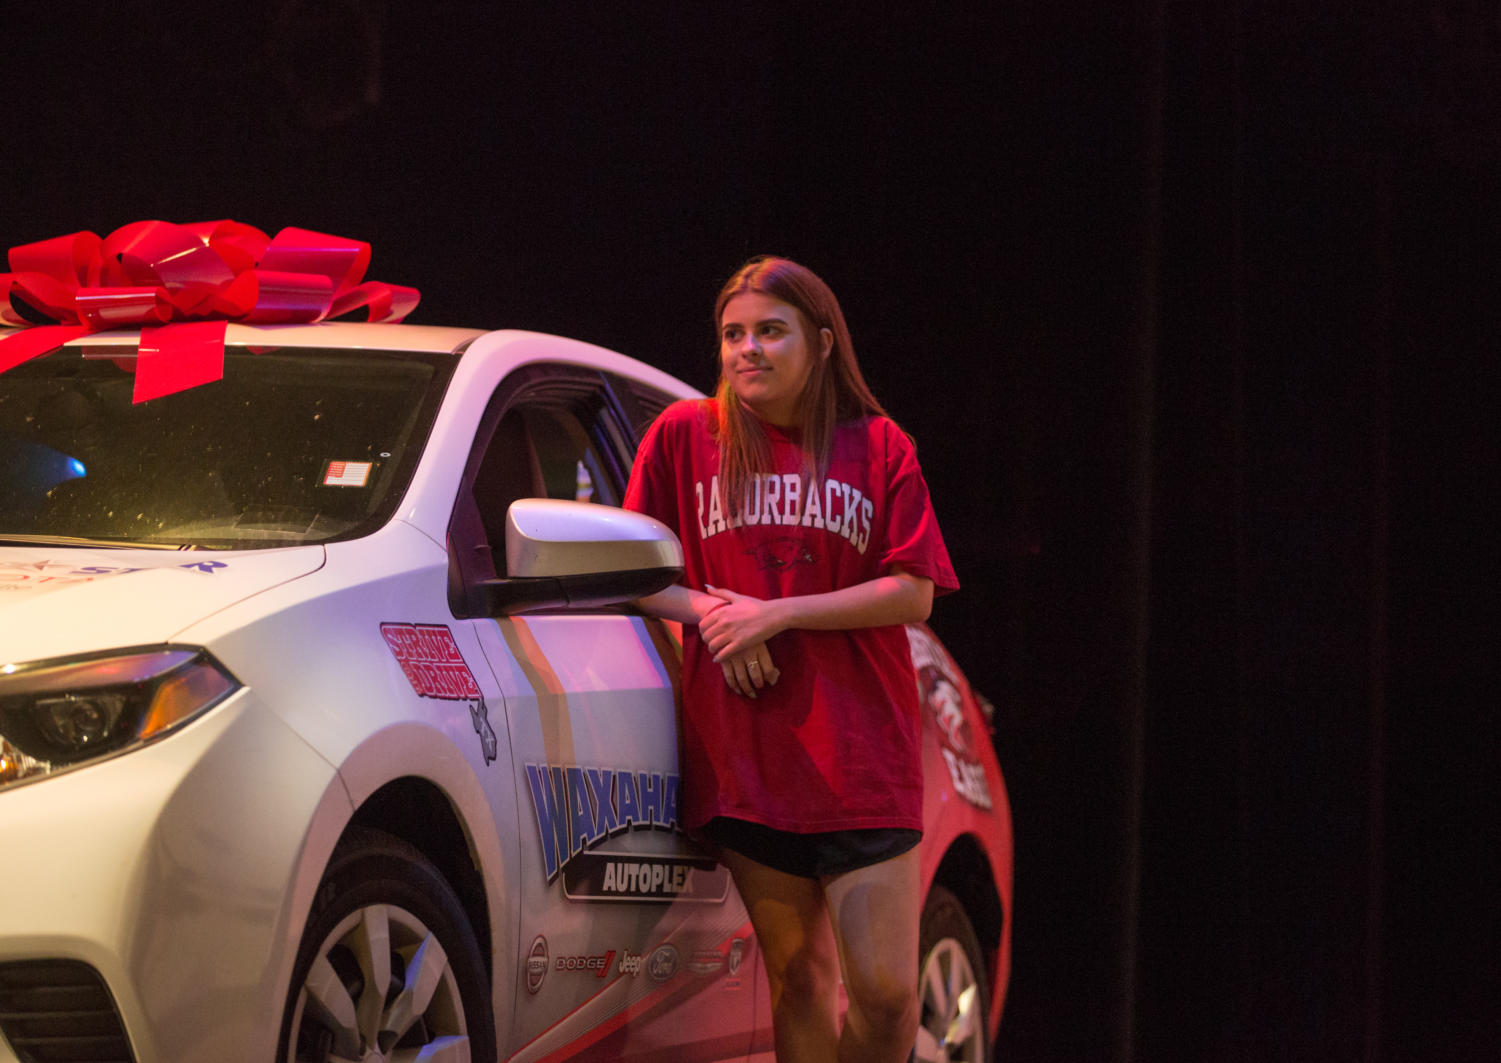 Sophomore Isabelle Adoue stands next to the free car she won for her perfect attendance throughout the year on May 21, 2018 in Argyle, Tx. (Sarah Berney / The Talon News)